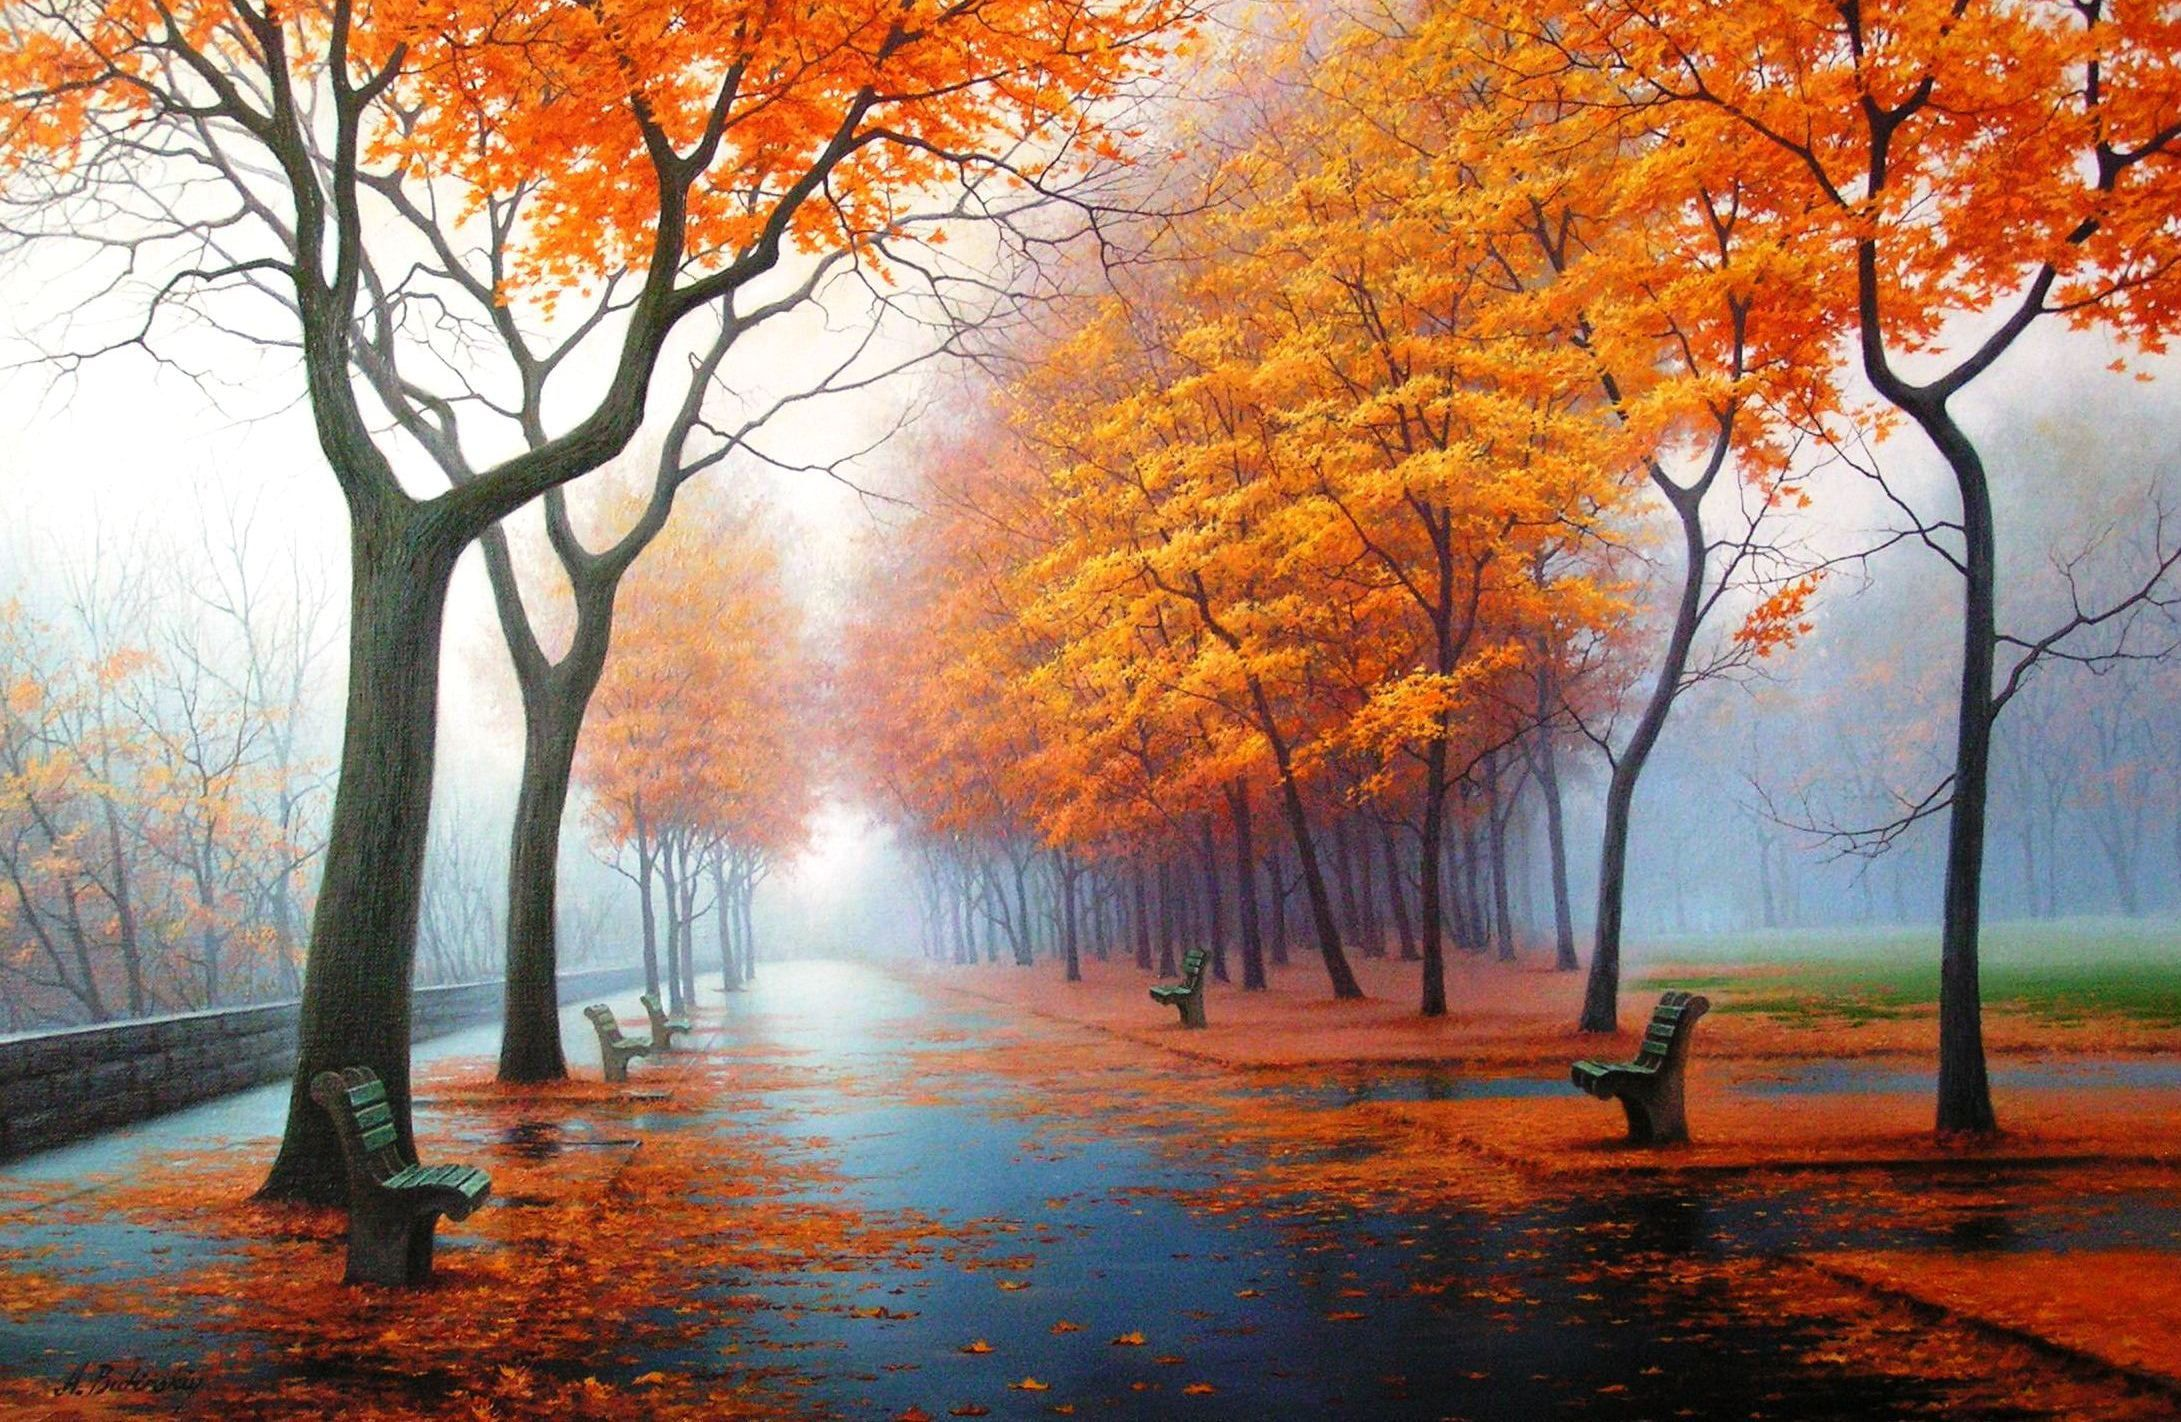 Orange Leafed Trees Painting Autumn Nature Park Figure Picture Art Drawings Pictures 1080 Hd Nature Wallpapers Beautiful Wallpaper Hd Nature Wallpaper